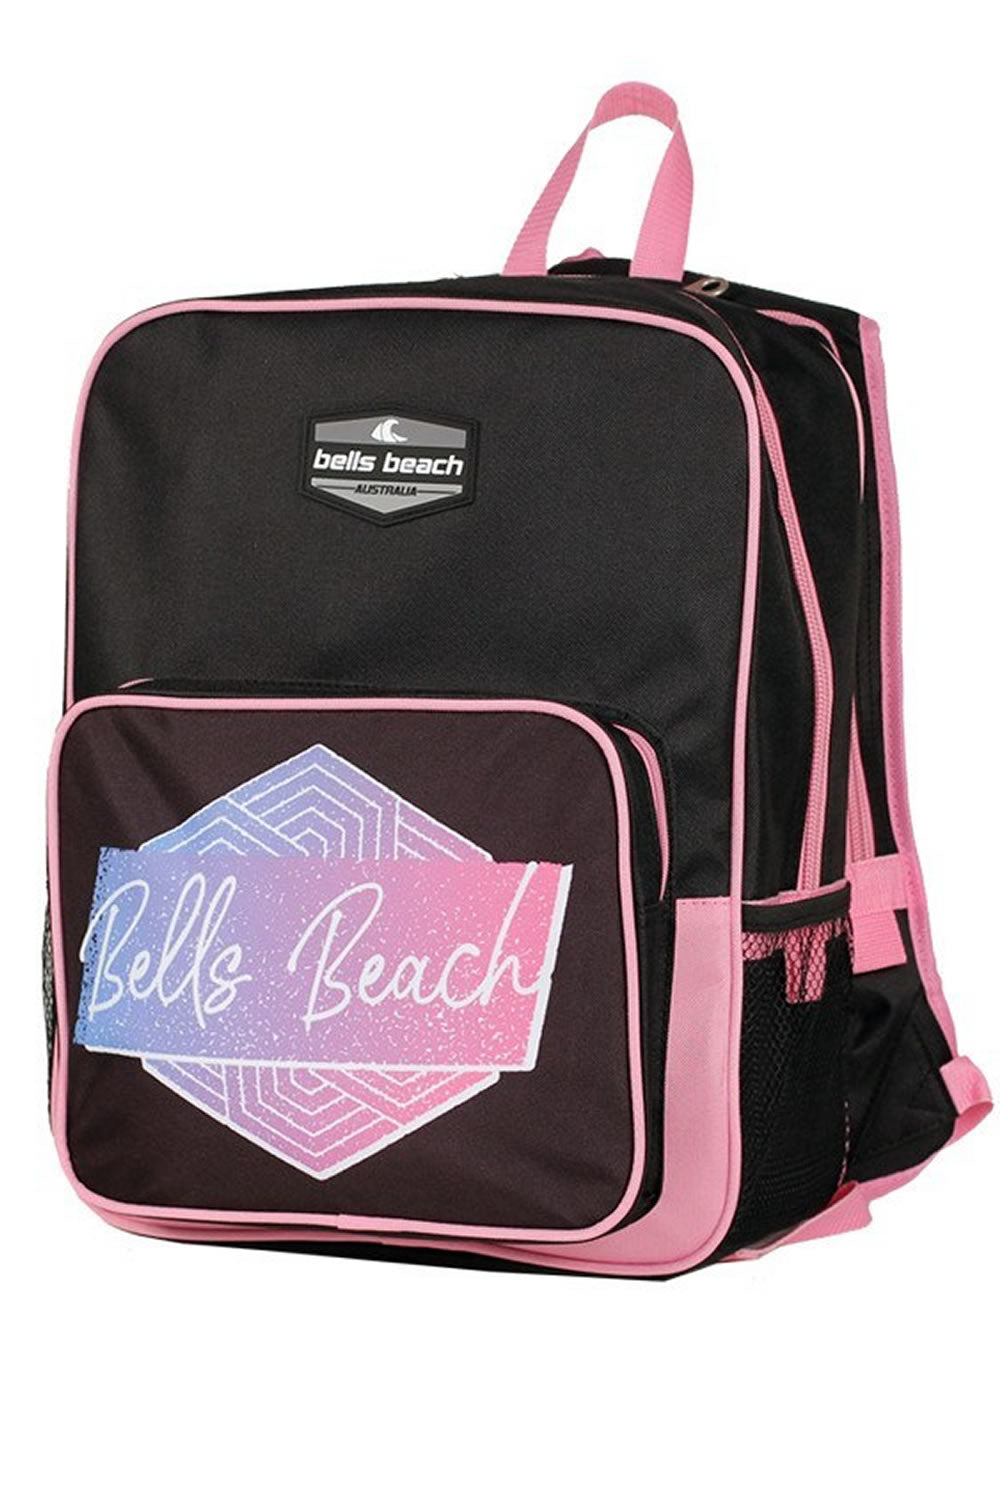 Bells Beach 28 Lt Backpack